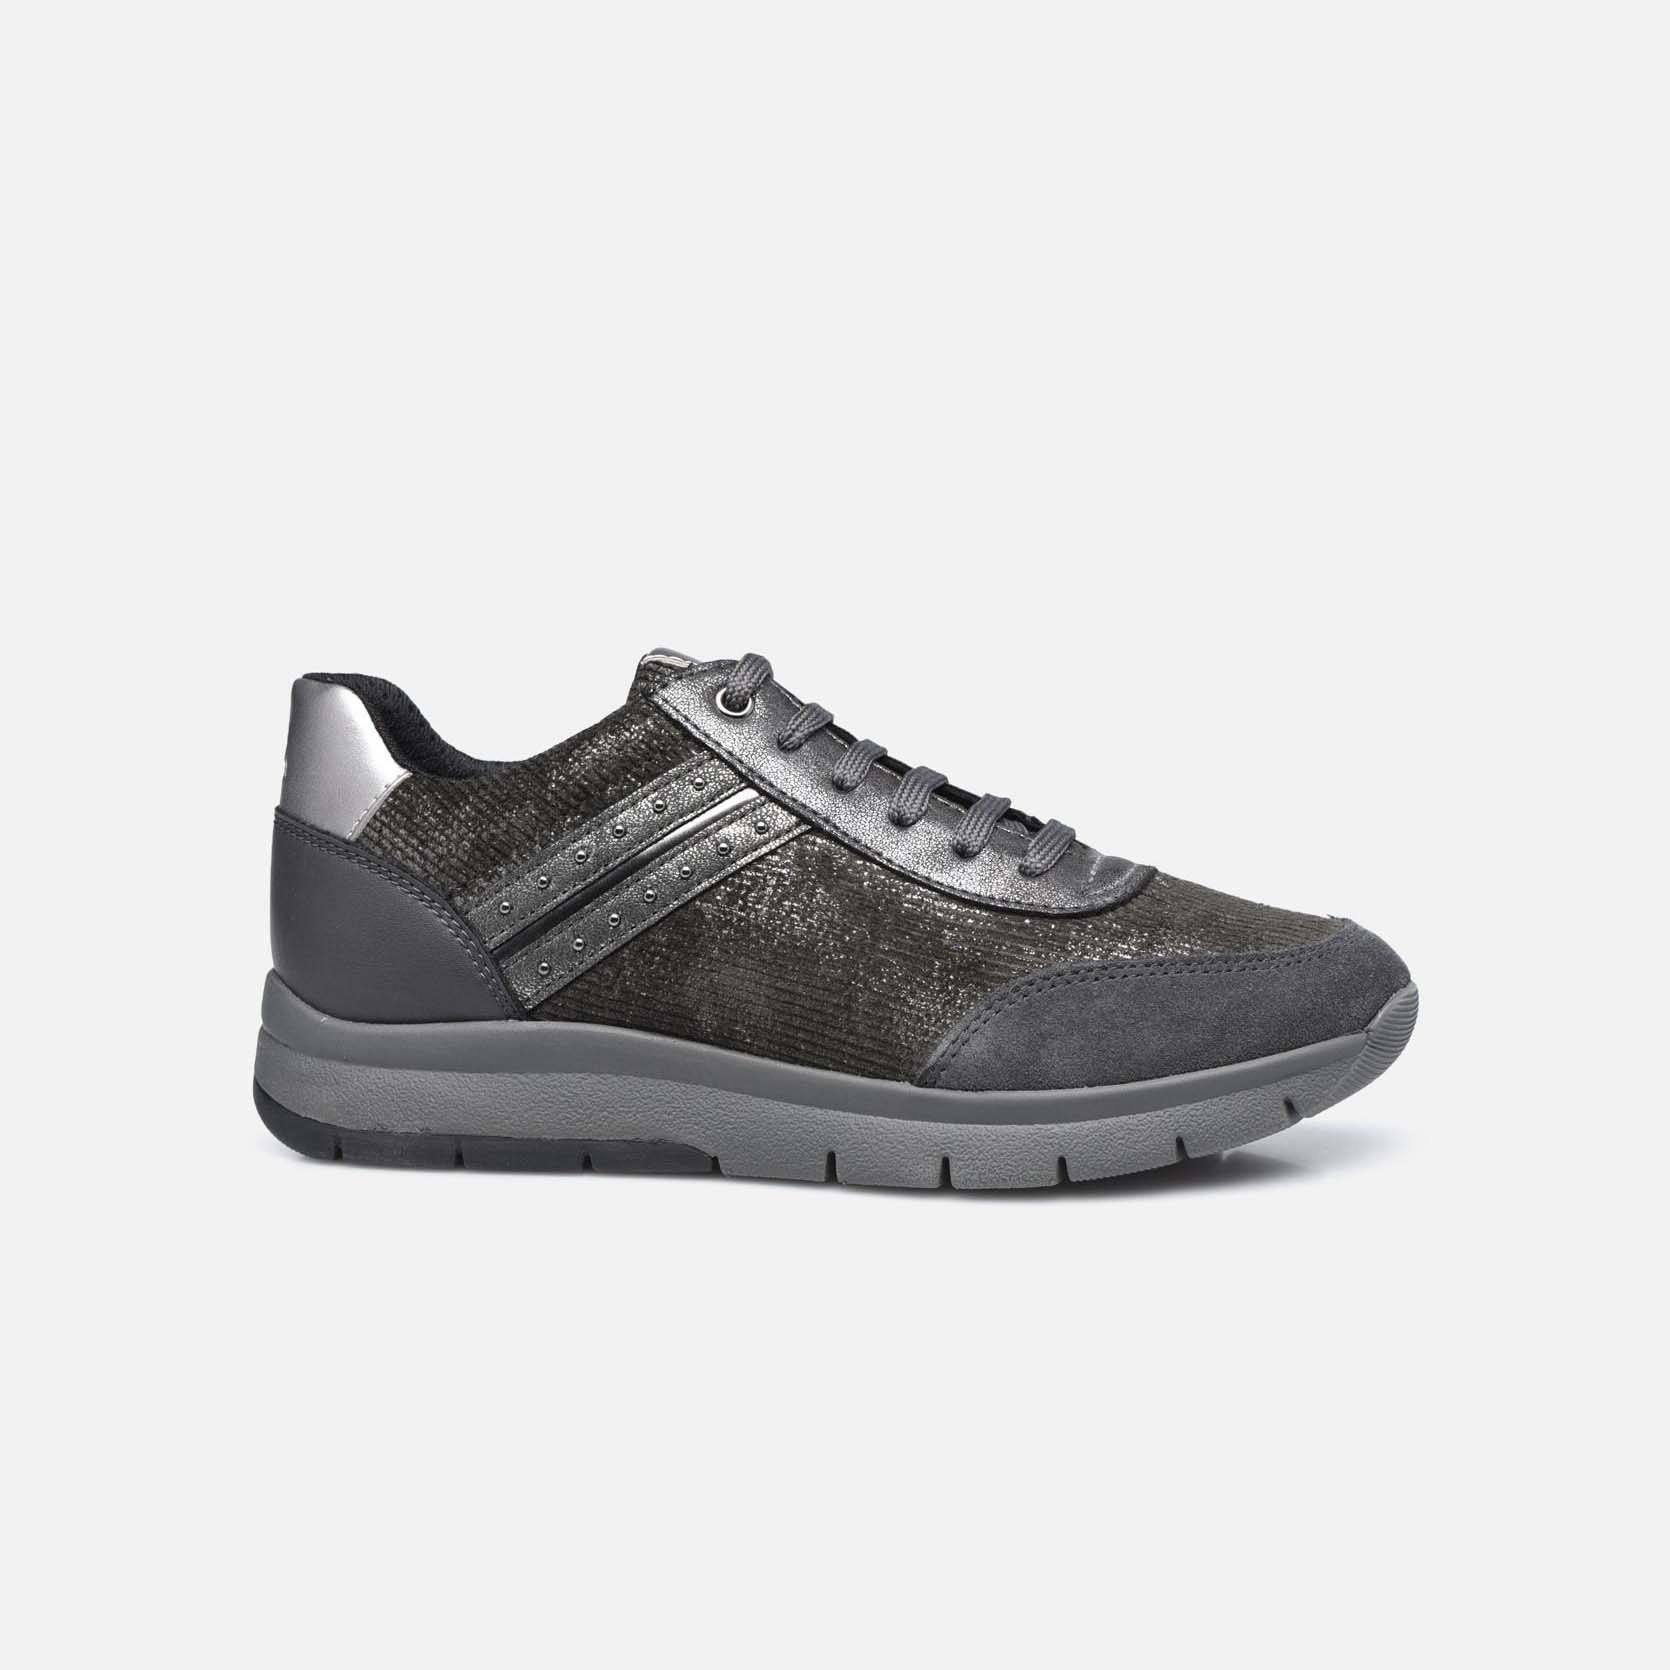 Baskets Geox gris anthracite CALLYN Baskets Geox